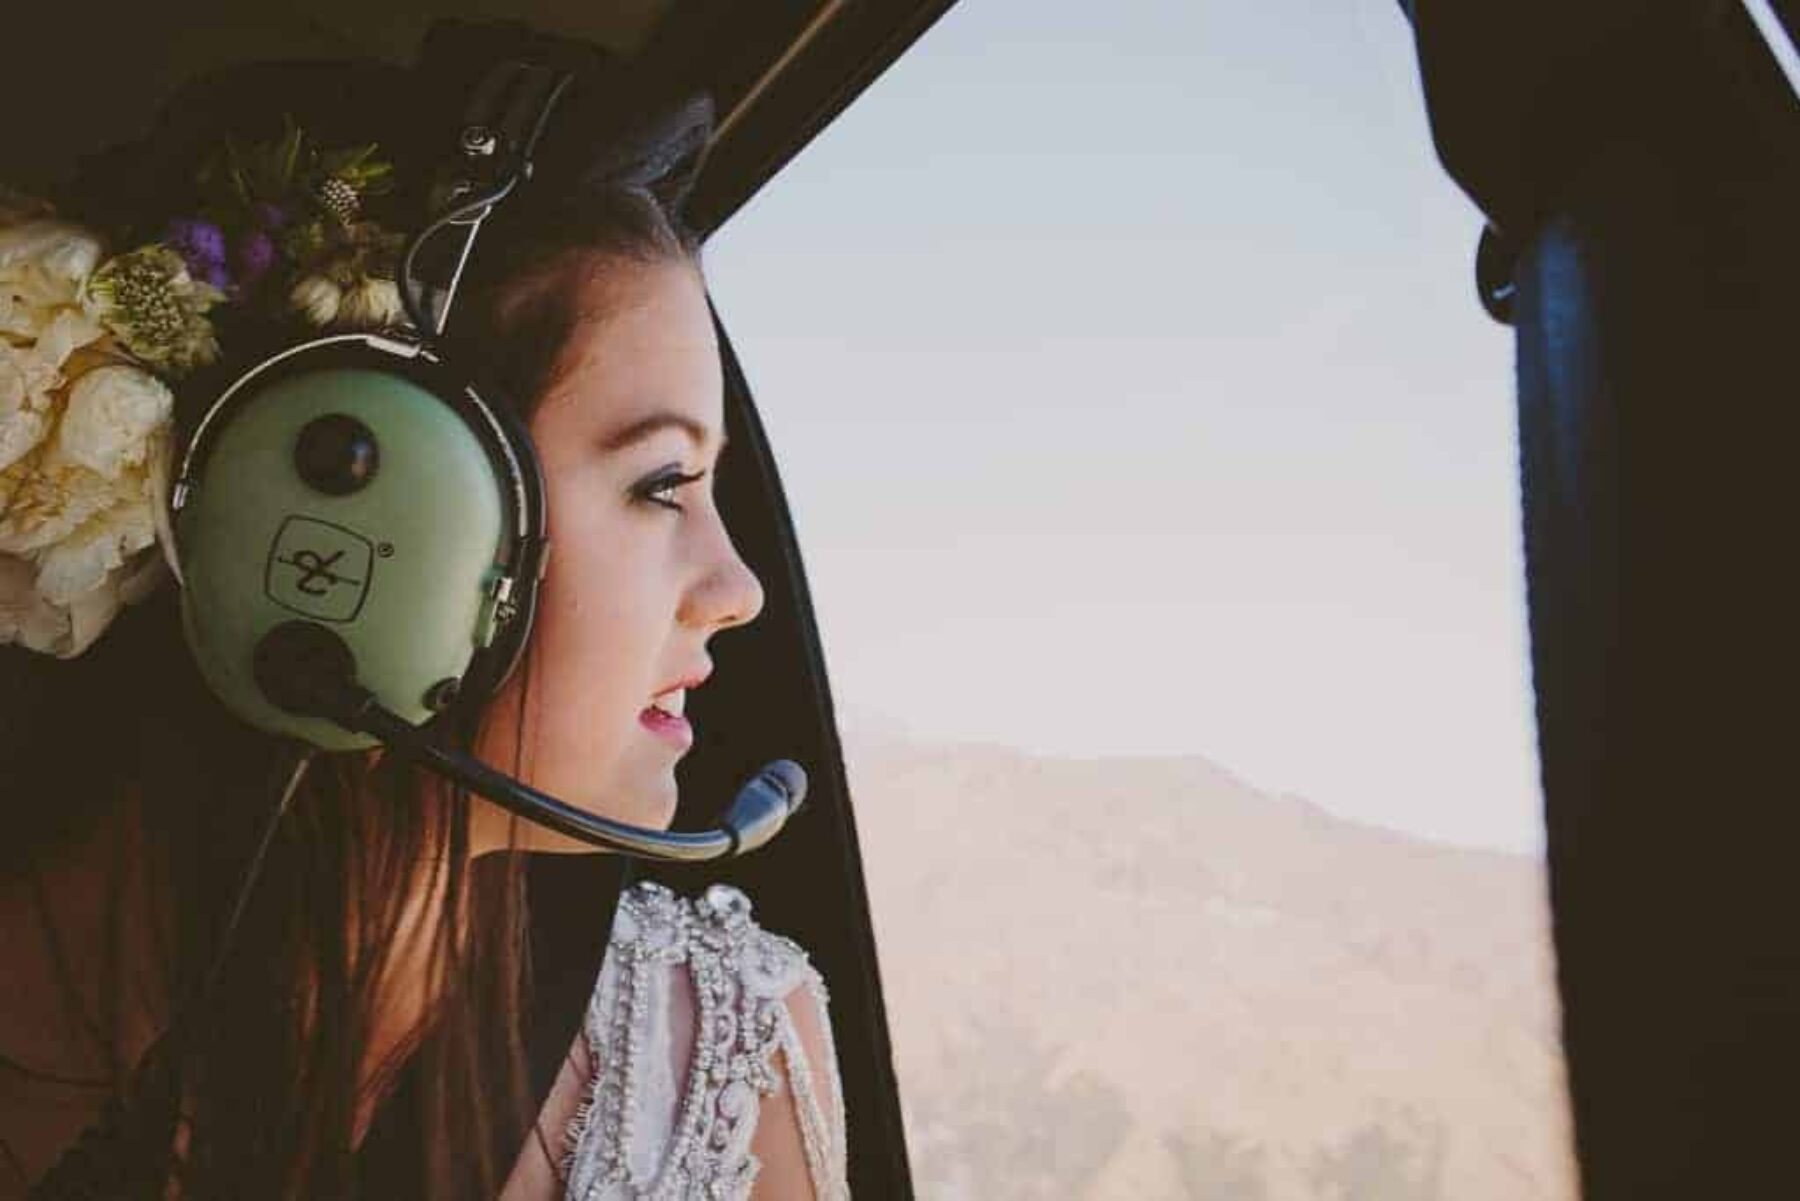 WIn a Wanaka New Zealand helicopter wedding valued at over $24,000!